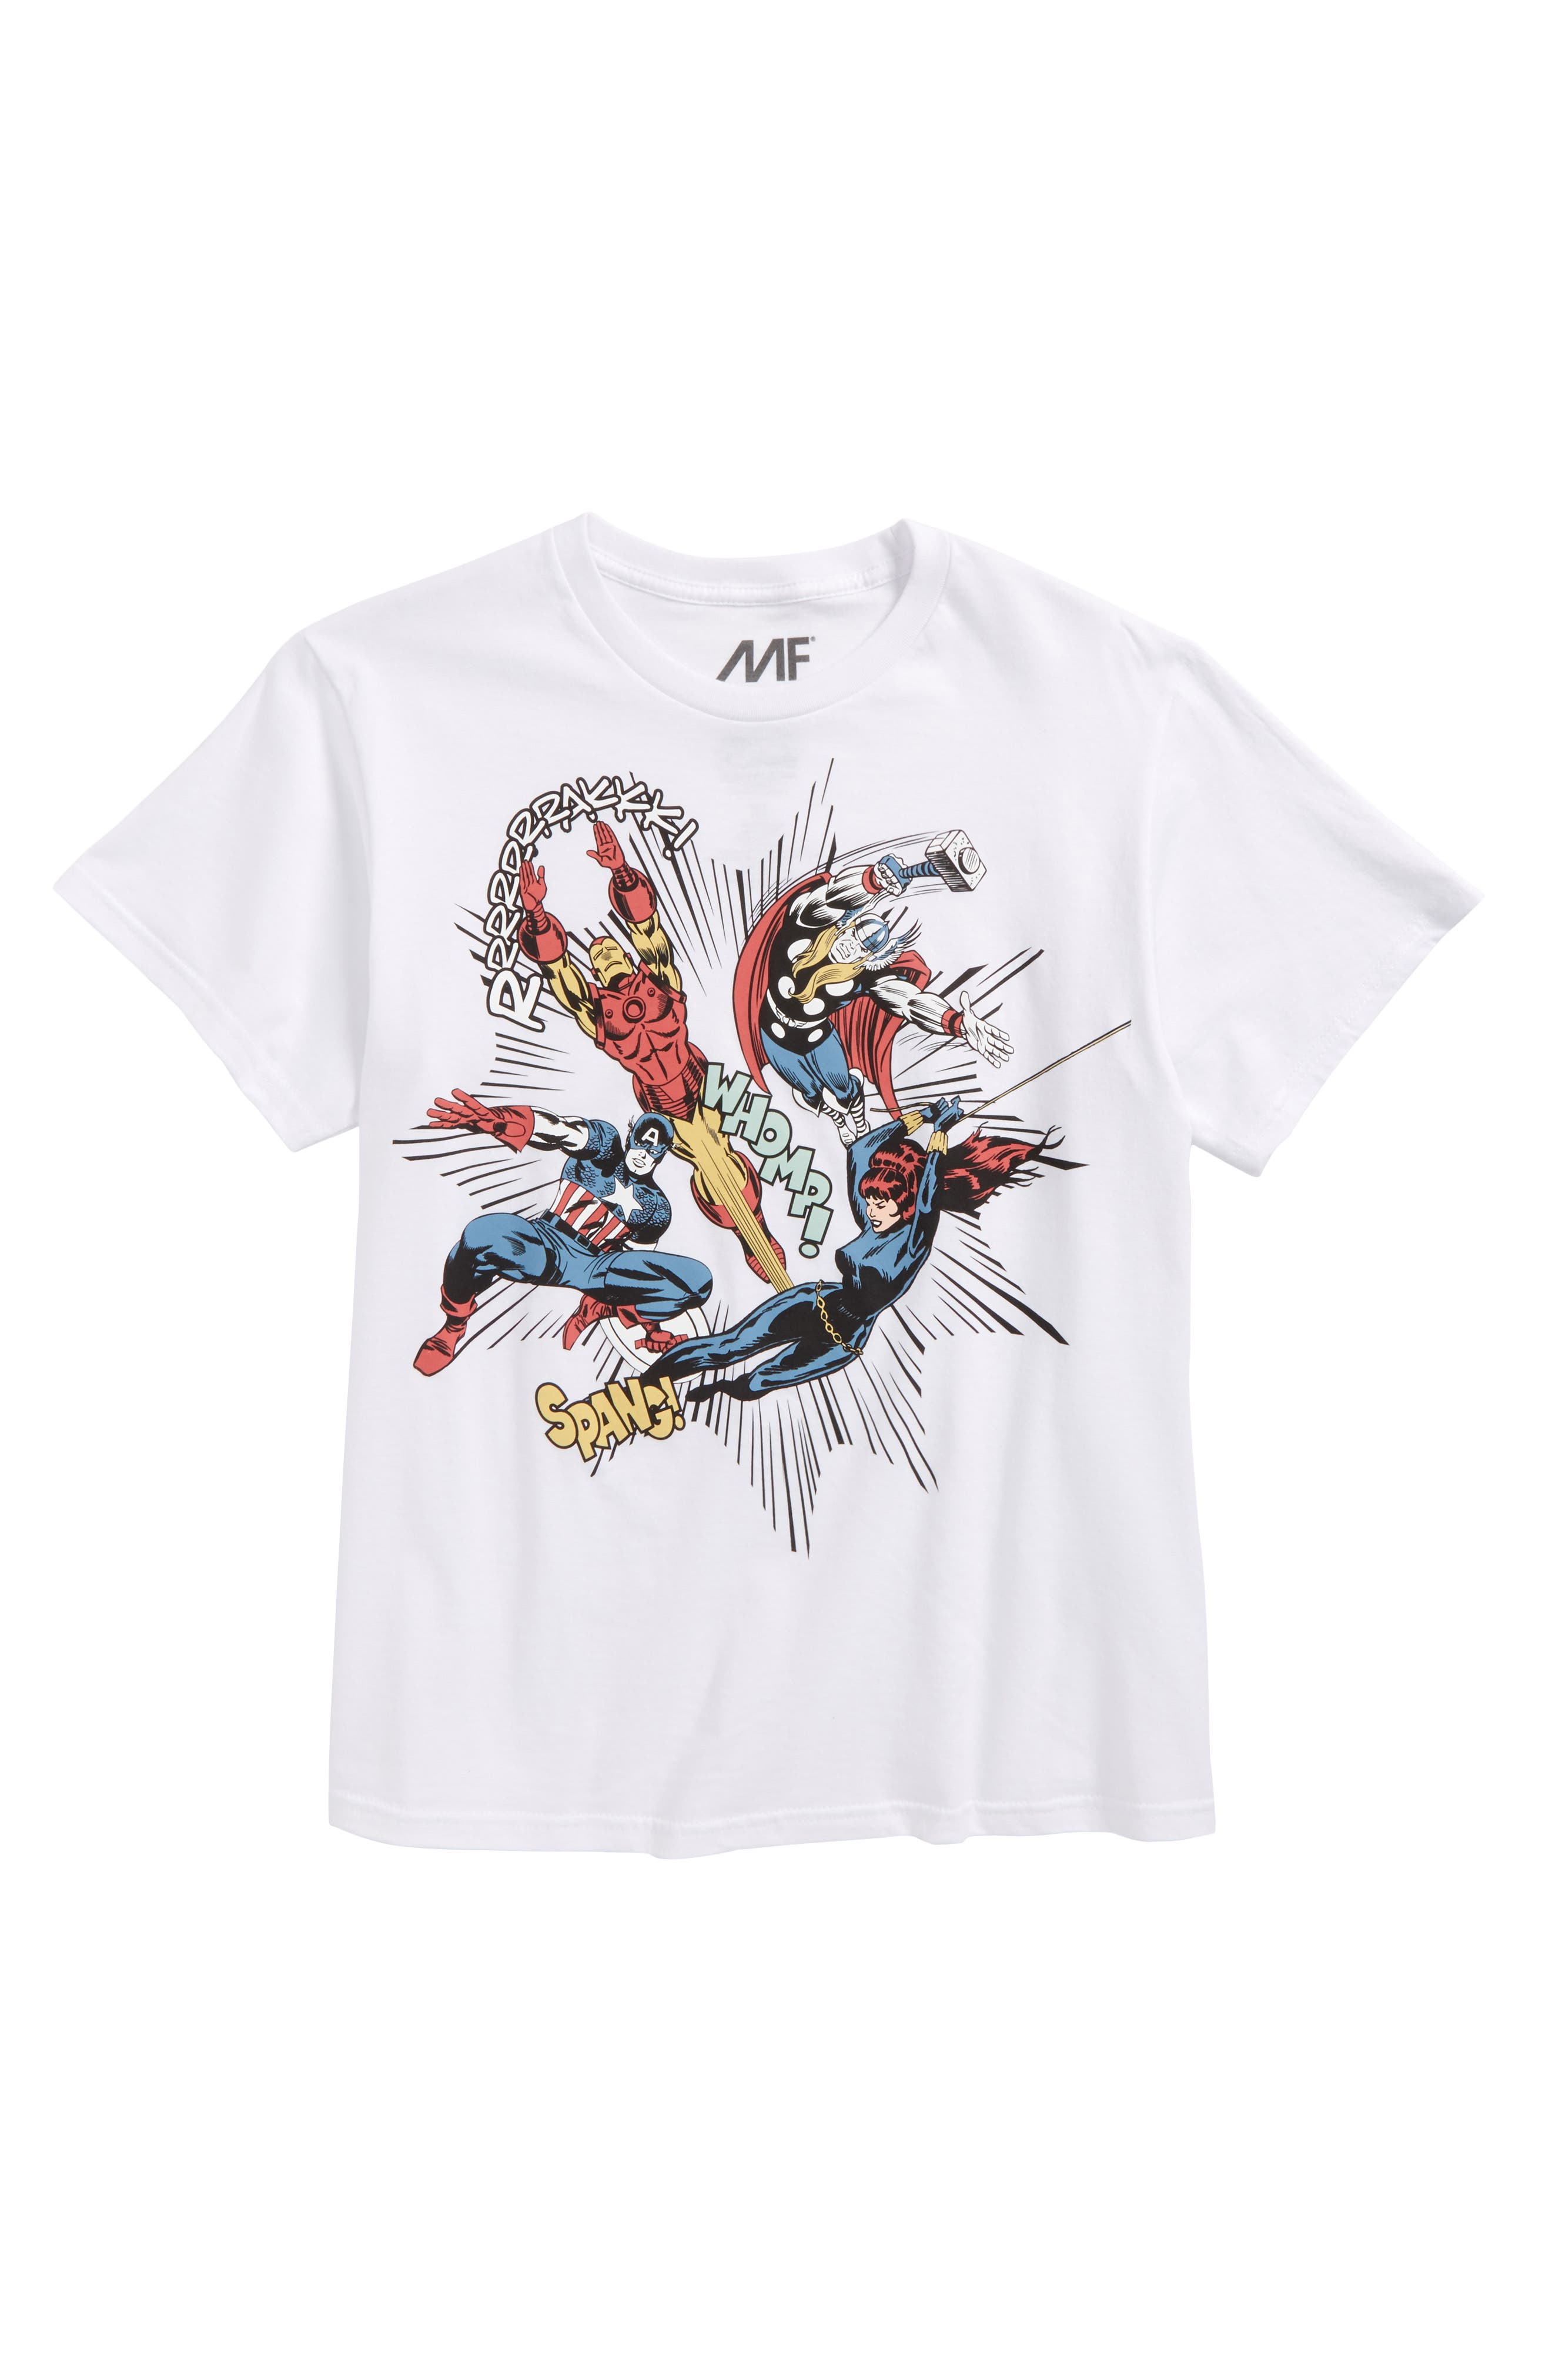 Avengers Oversided Action T-Shirt,                         Main,                         color, 100